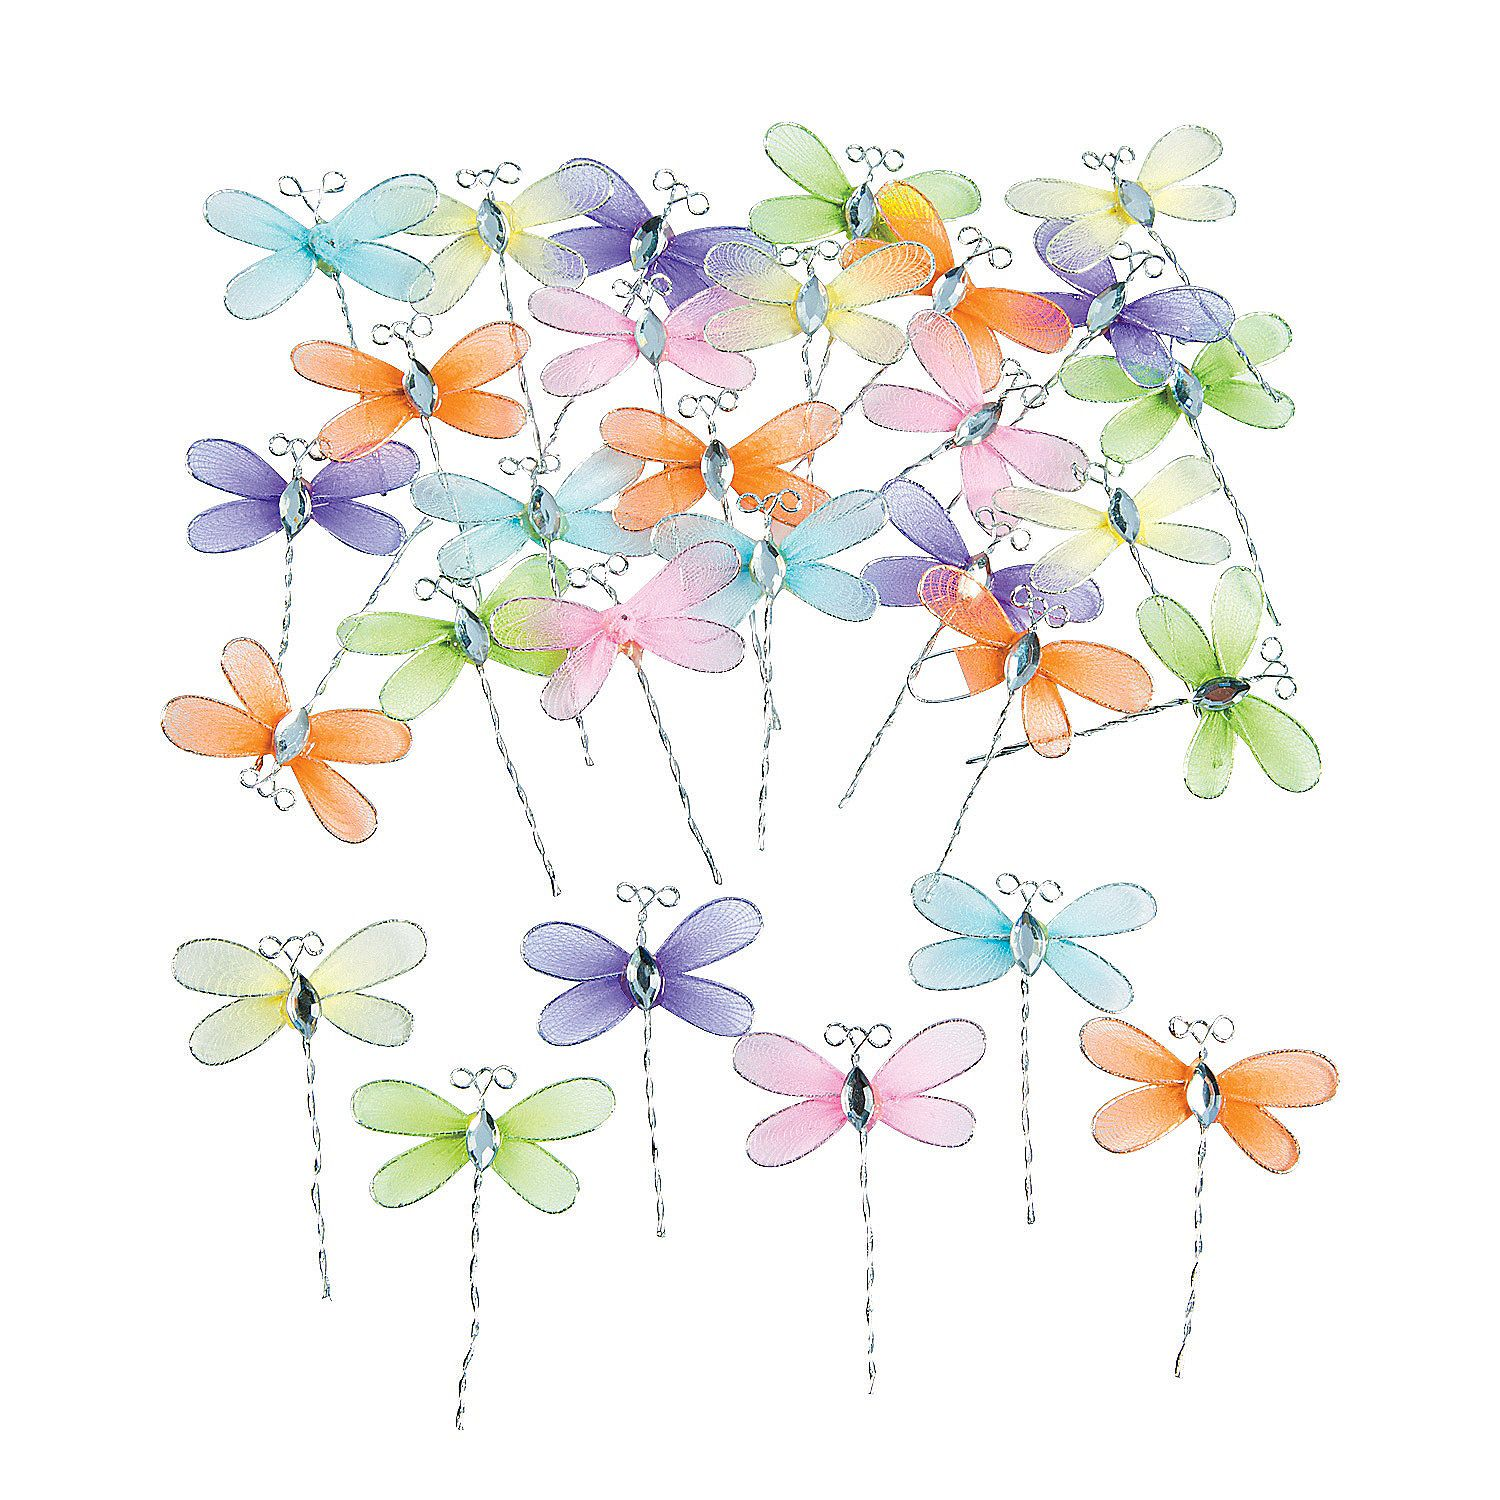 Dragonflies orientaltrading fun crafting time pinterest use these fluttery dragonfly friends for craft projects adding some flair to potted plants creating your own hair accessories and more jeuxipadfo Gallery